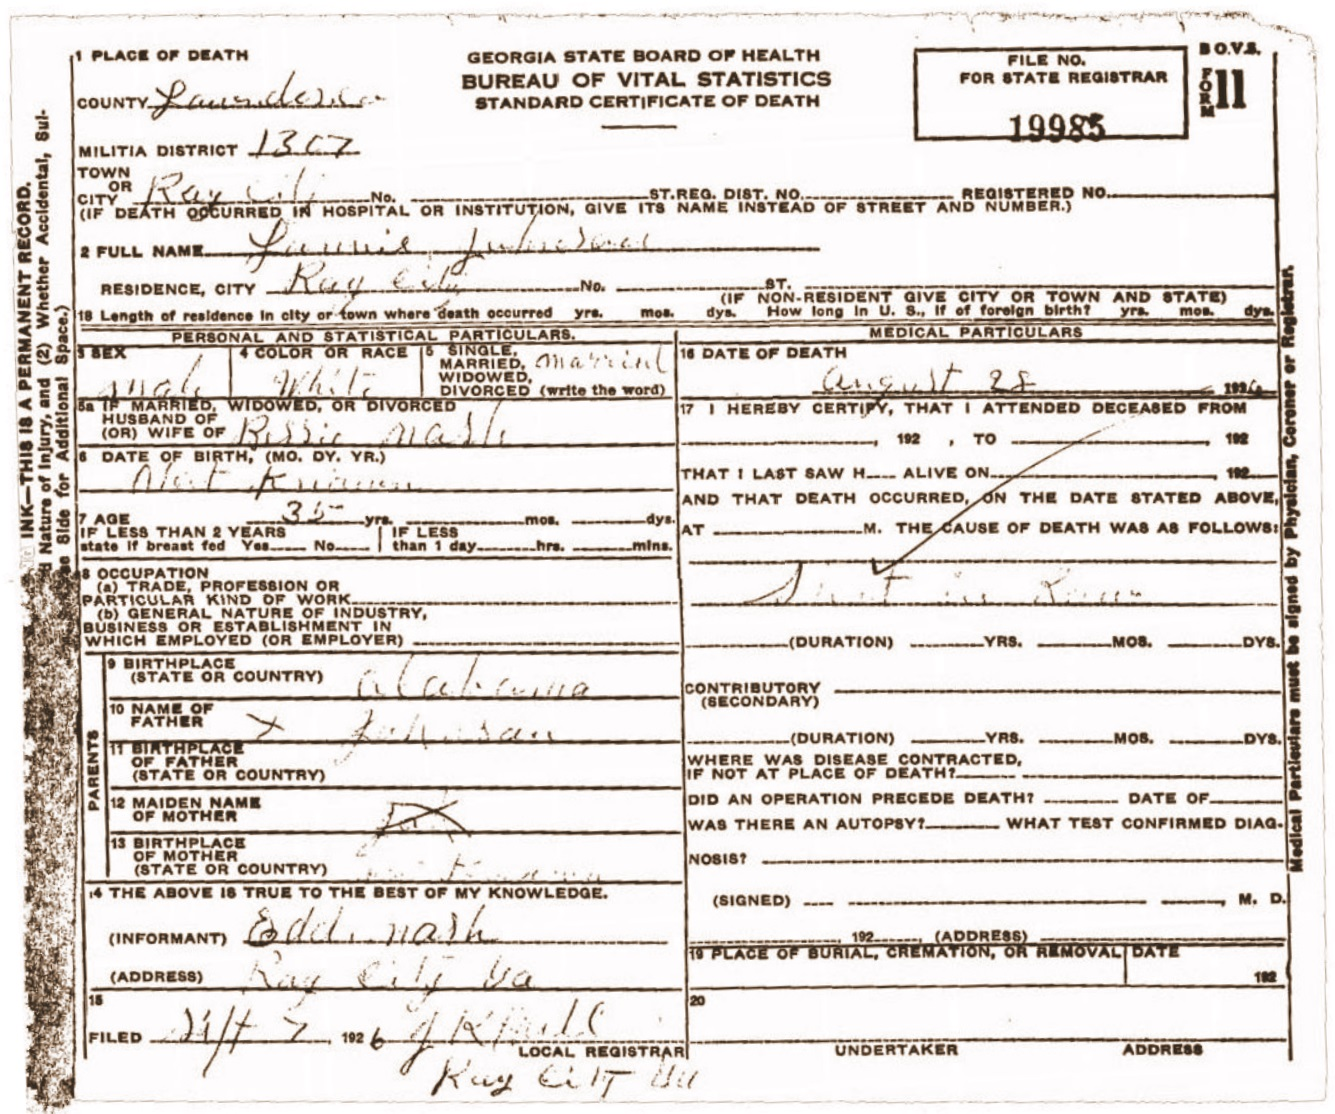 Alto georgia ray city history blog death certificate of lonnie johnson august 28 1926 aiddatafo Image collections